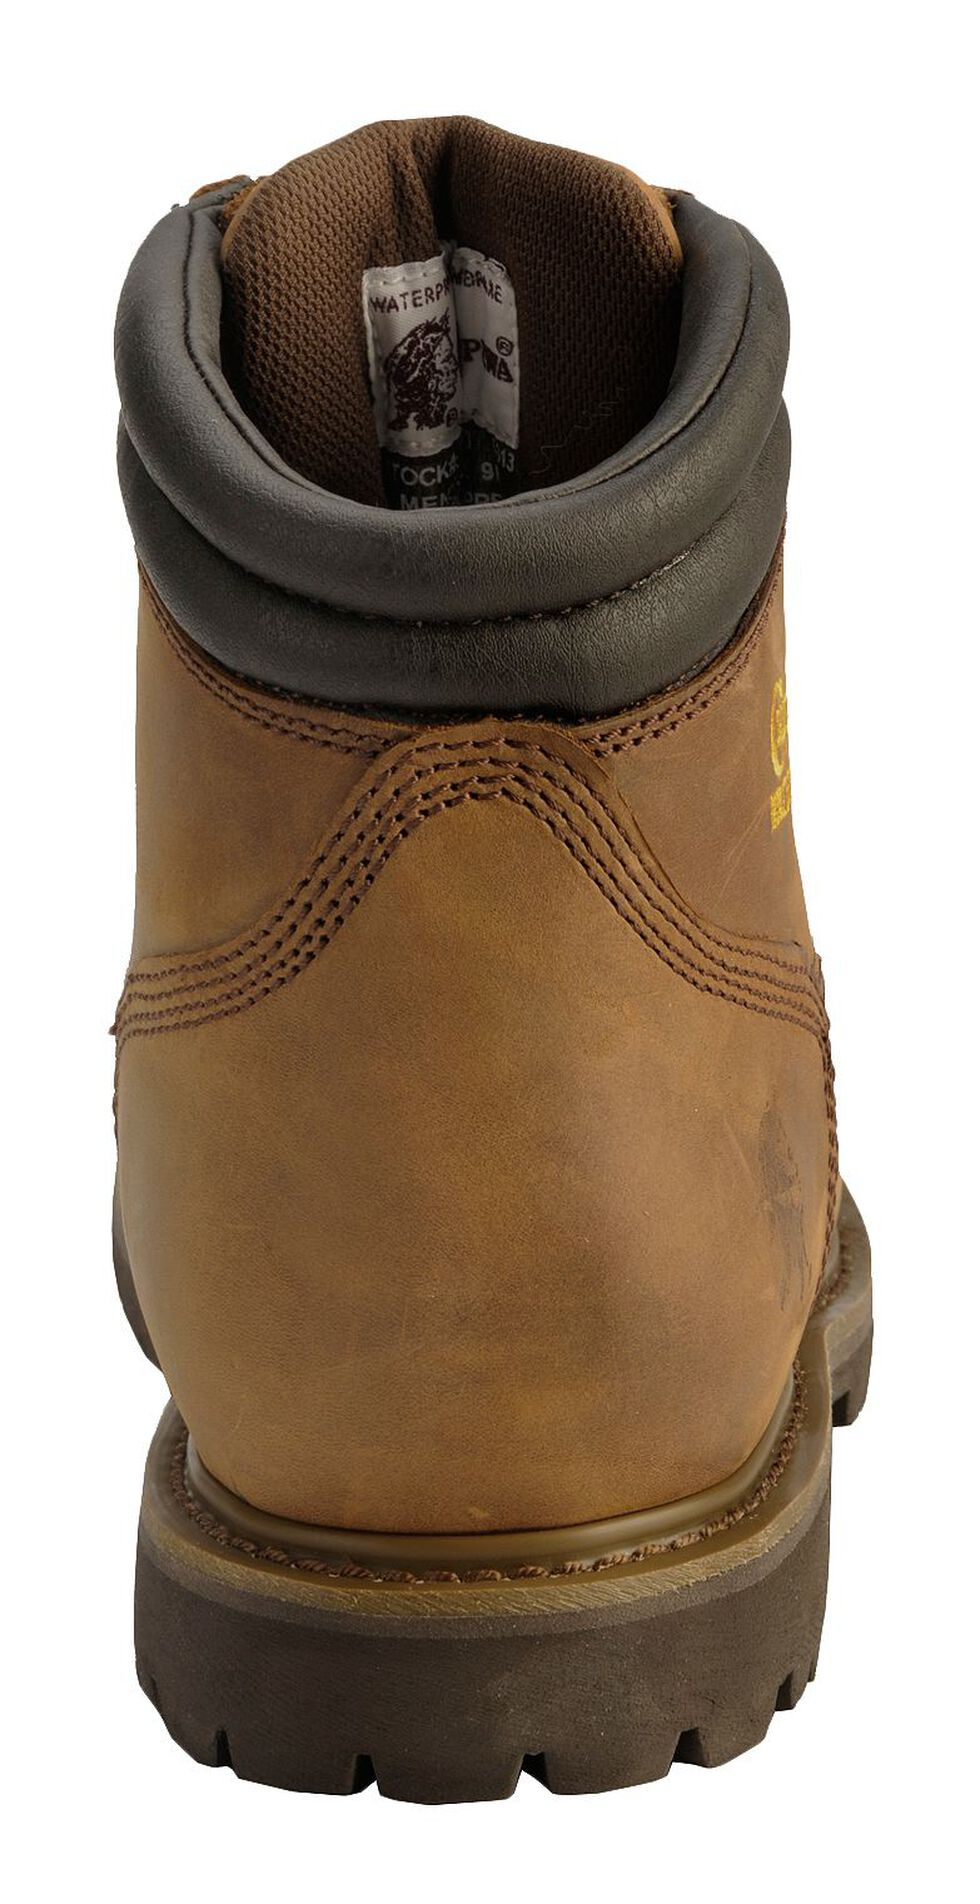 "Chippewa IQ Insulated & Waterproof 6"" Lace-Up Work Boots - Round Toe, Bark, hi-res"